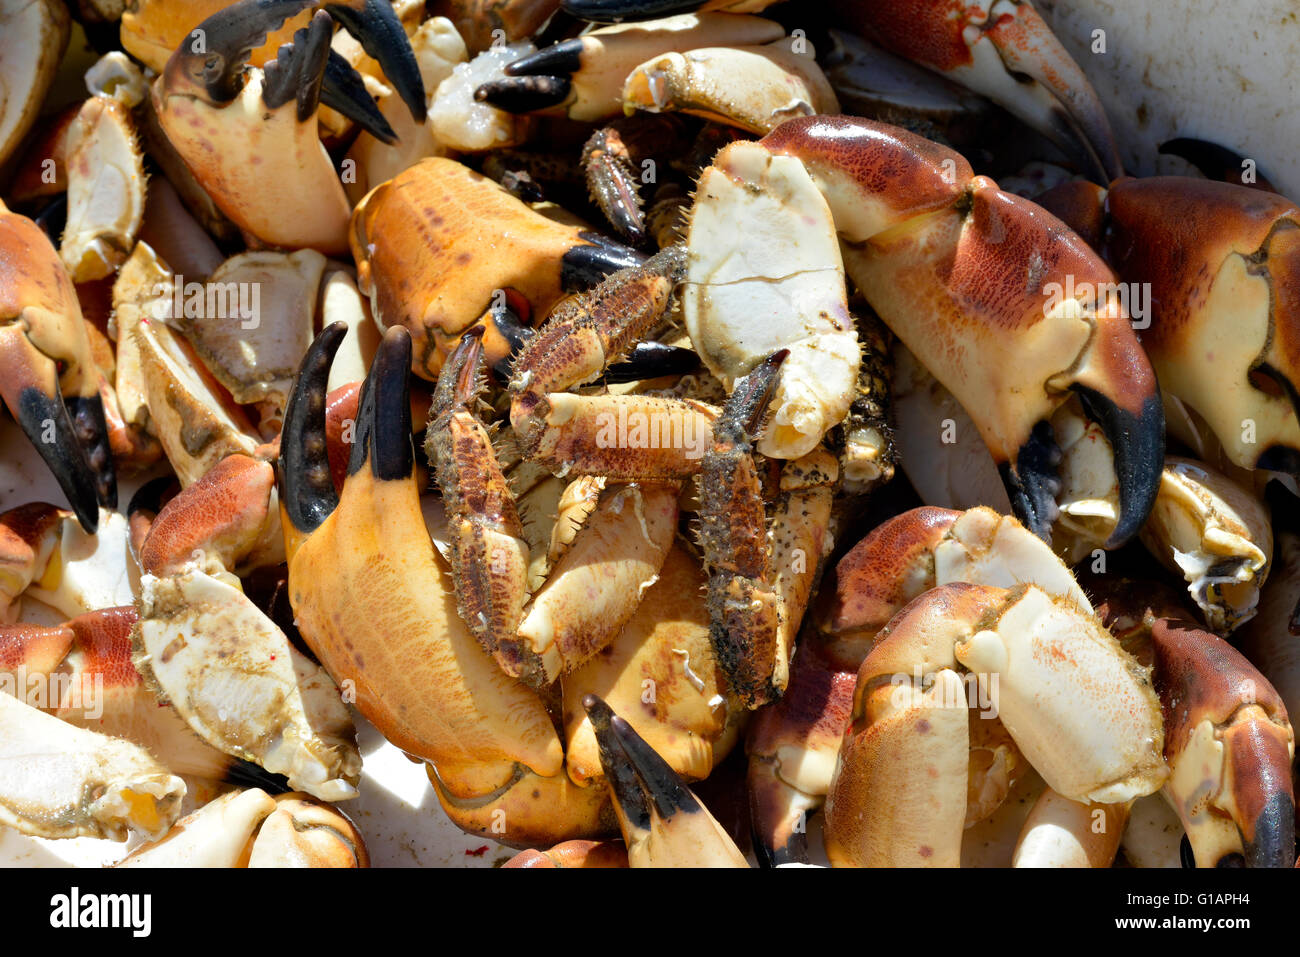 box full of lobster claws and one rogue live crab - Stock Image